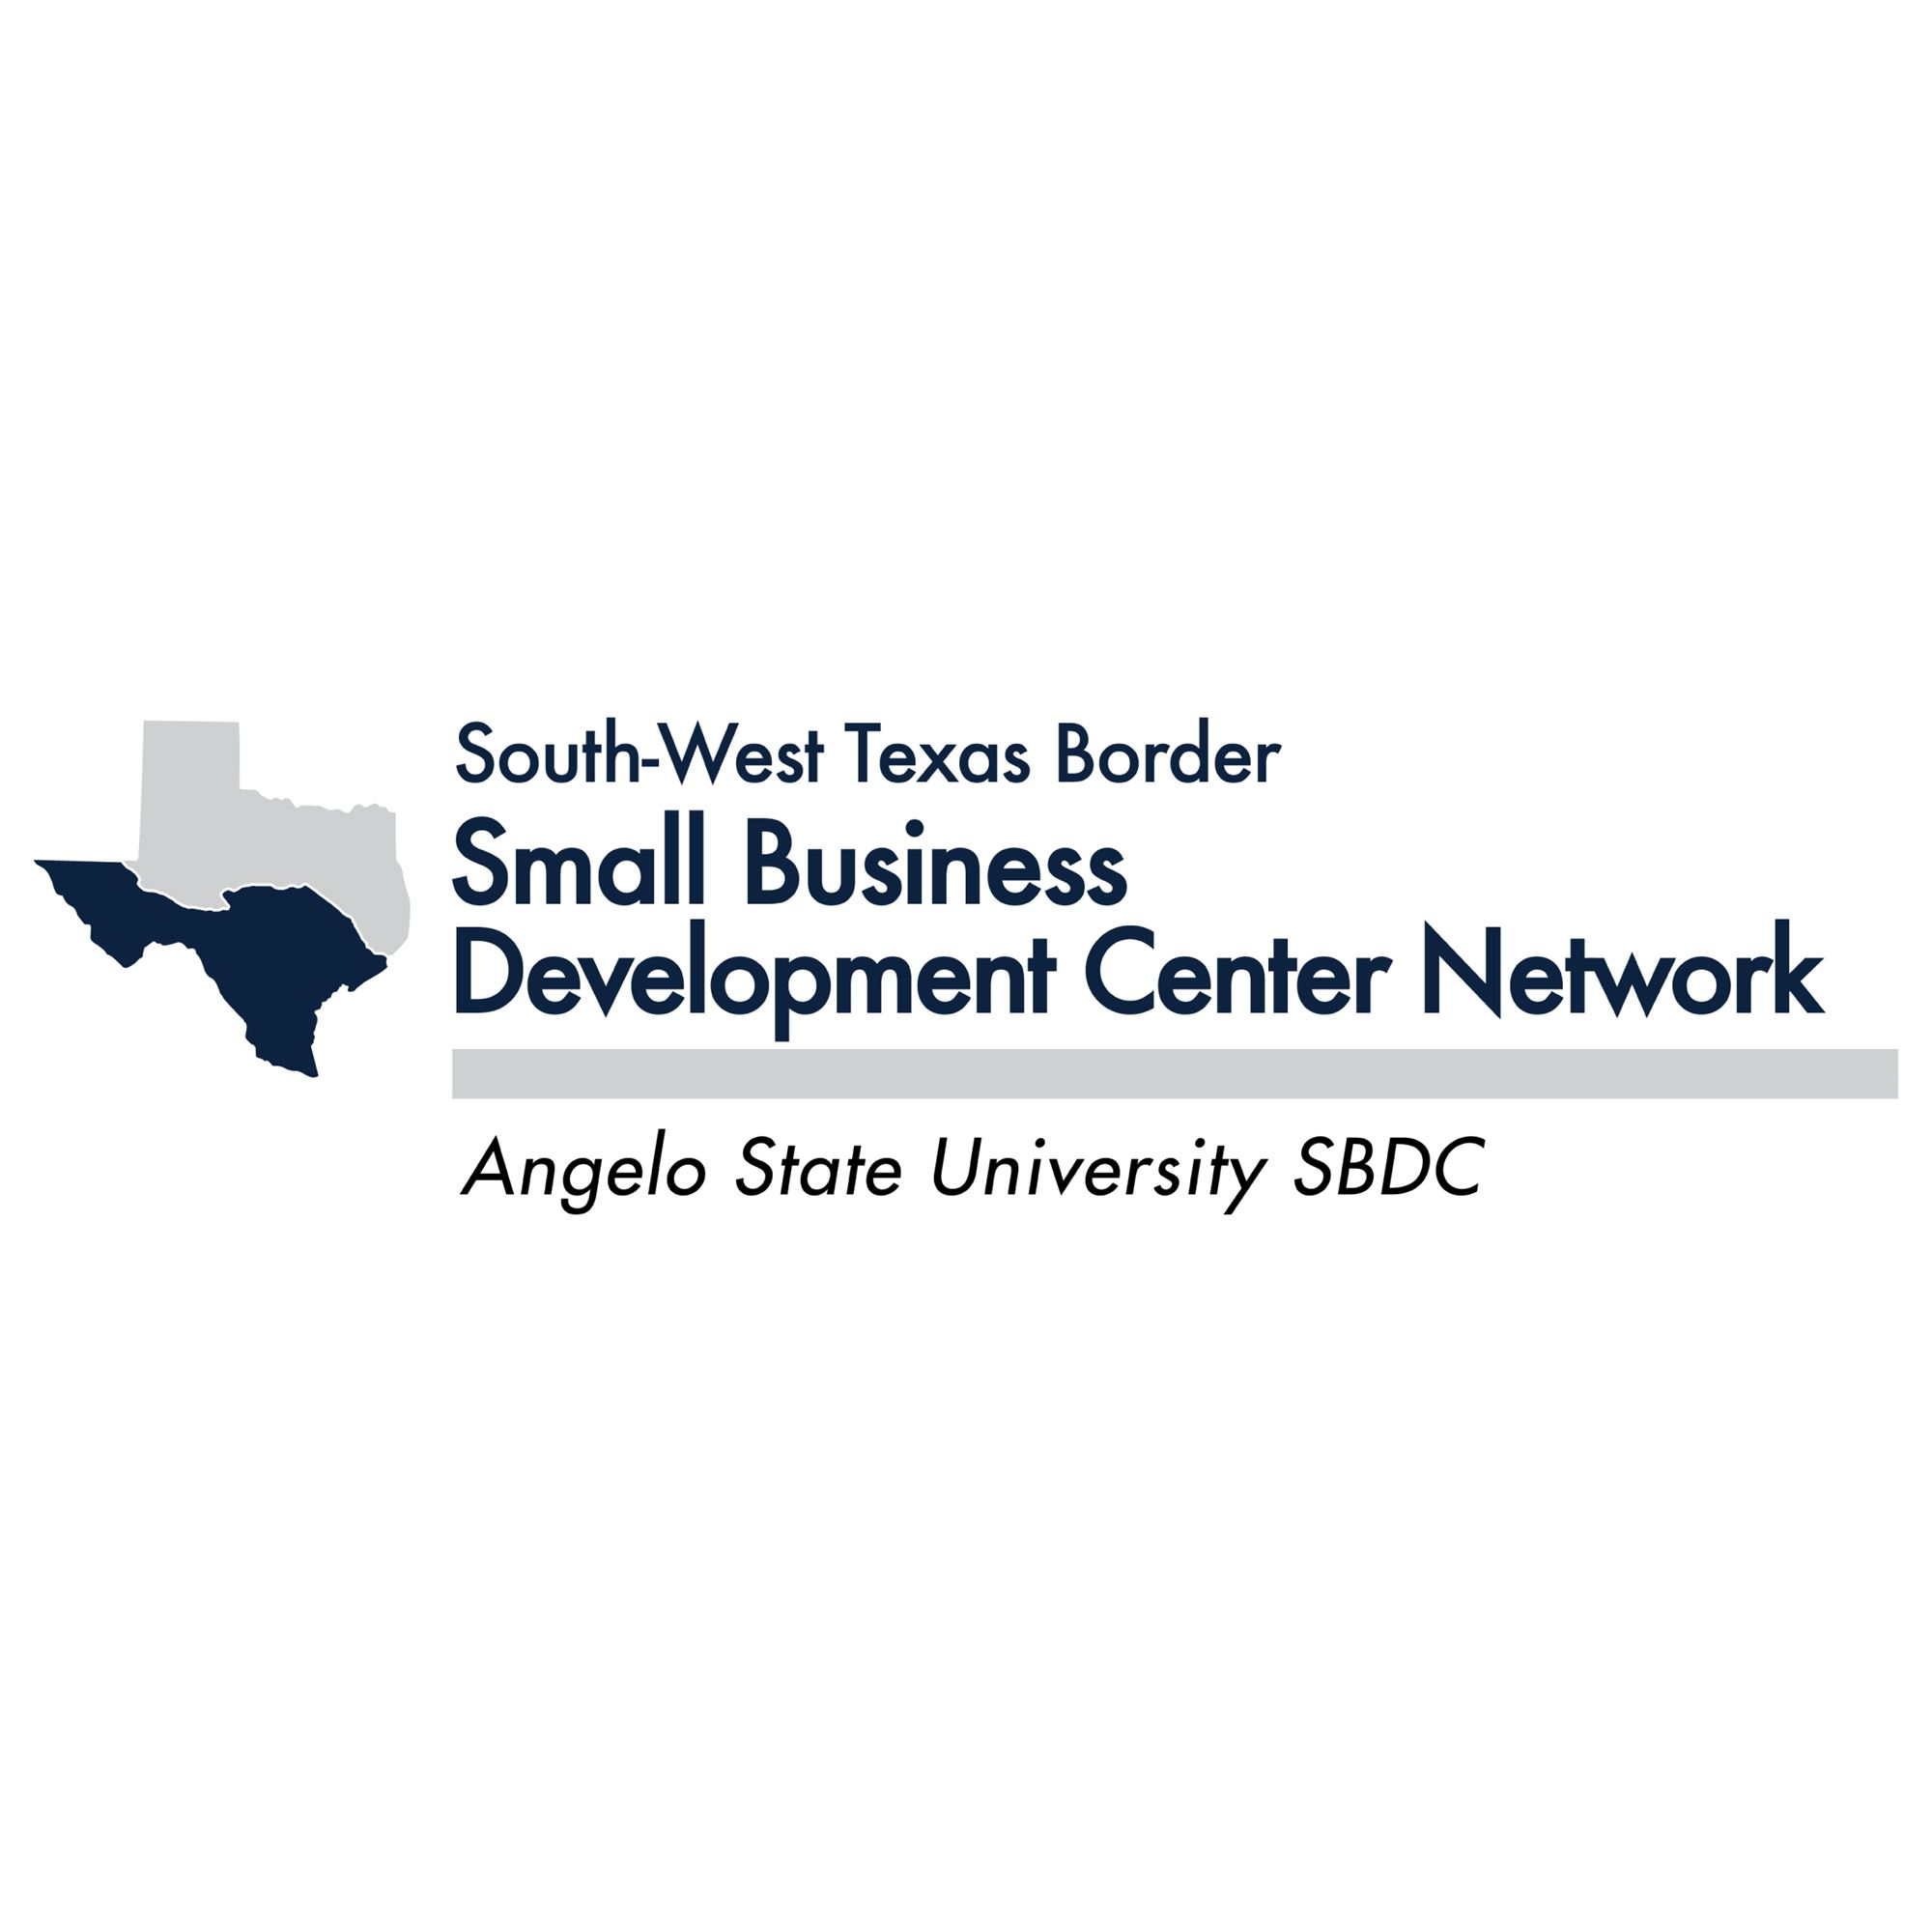 ASU's Small Business Development Center